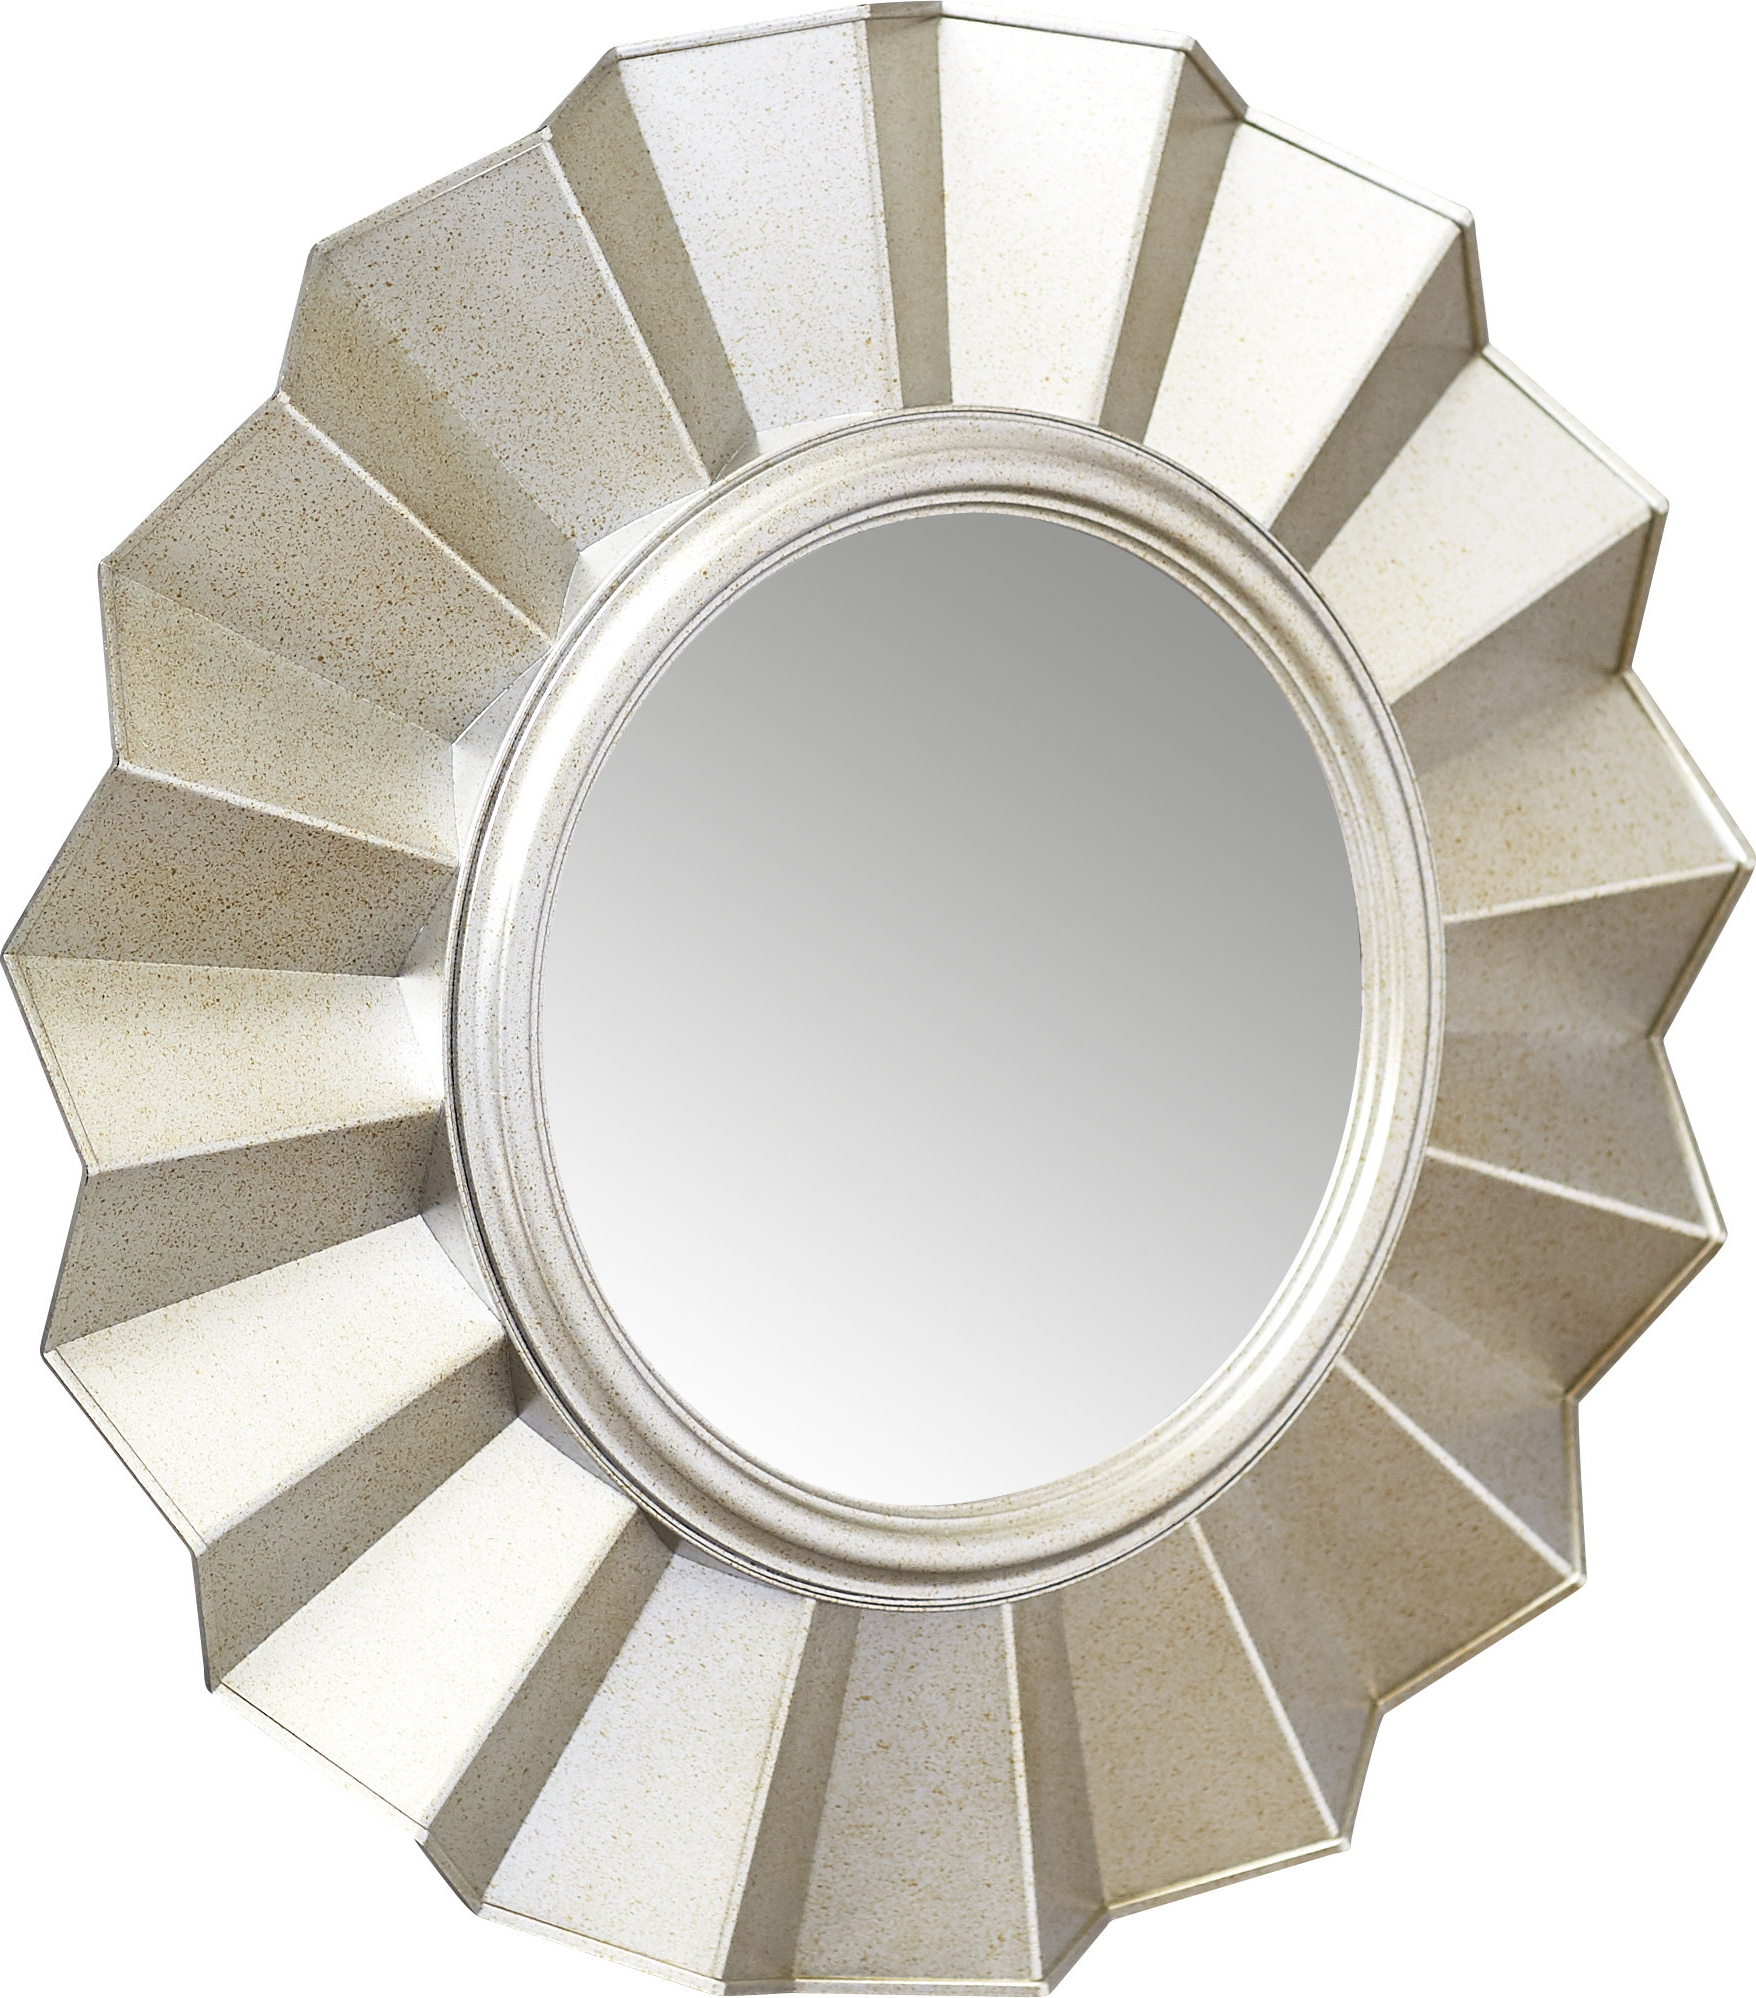 Tata Openwork Round Wall Mirrors In Most Recently Released Vertical Round Wall Mirror (View 11 of 20)